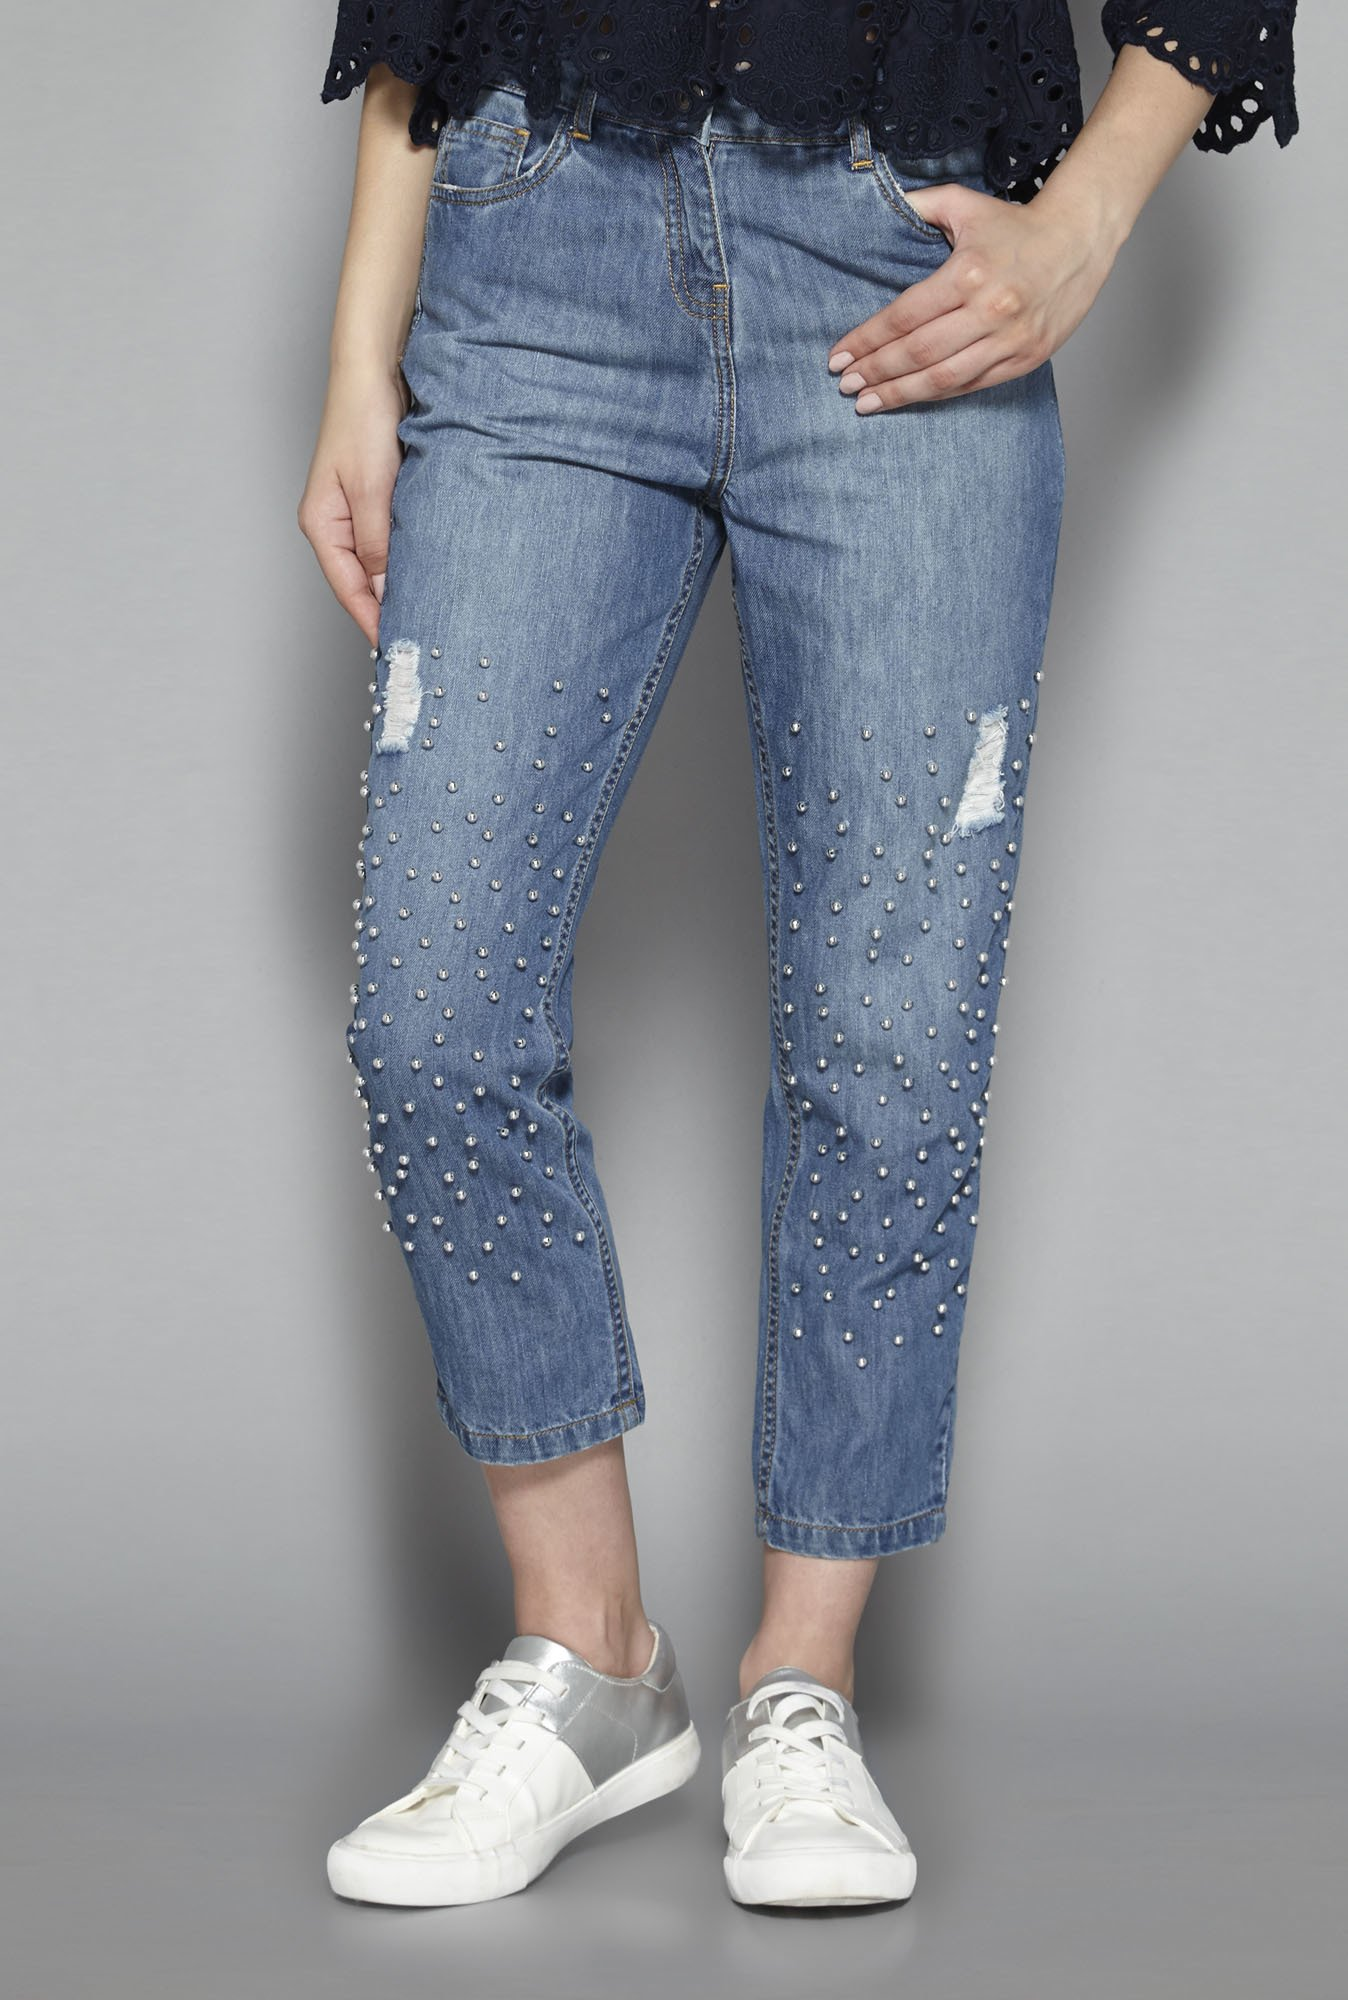 Nuon by Westside Mid Blue Sparkle Jeans